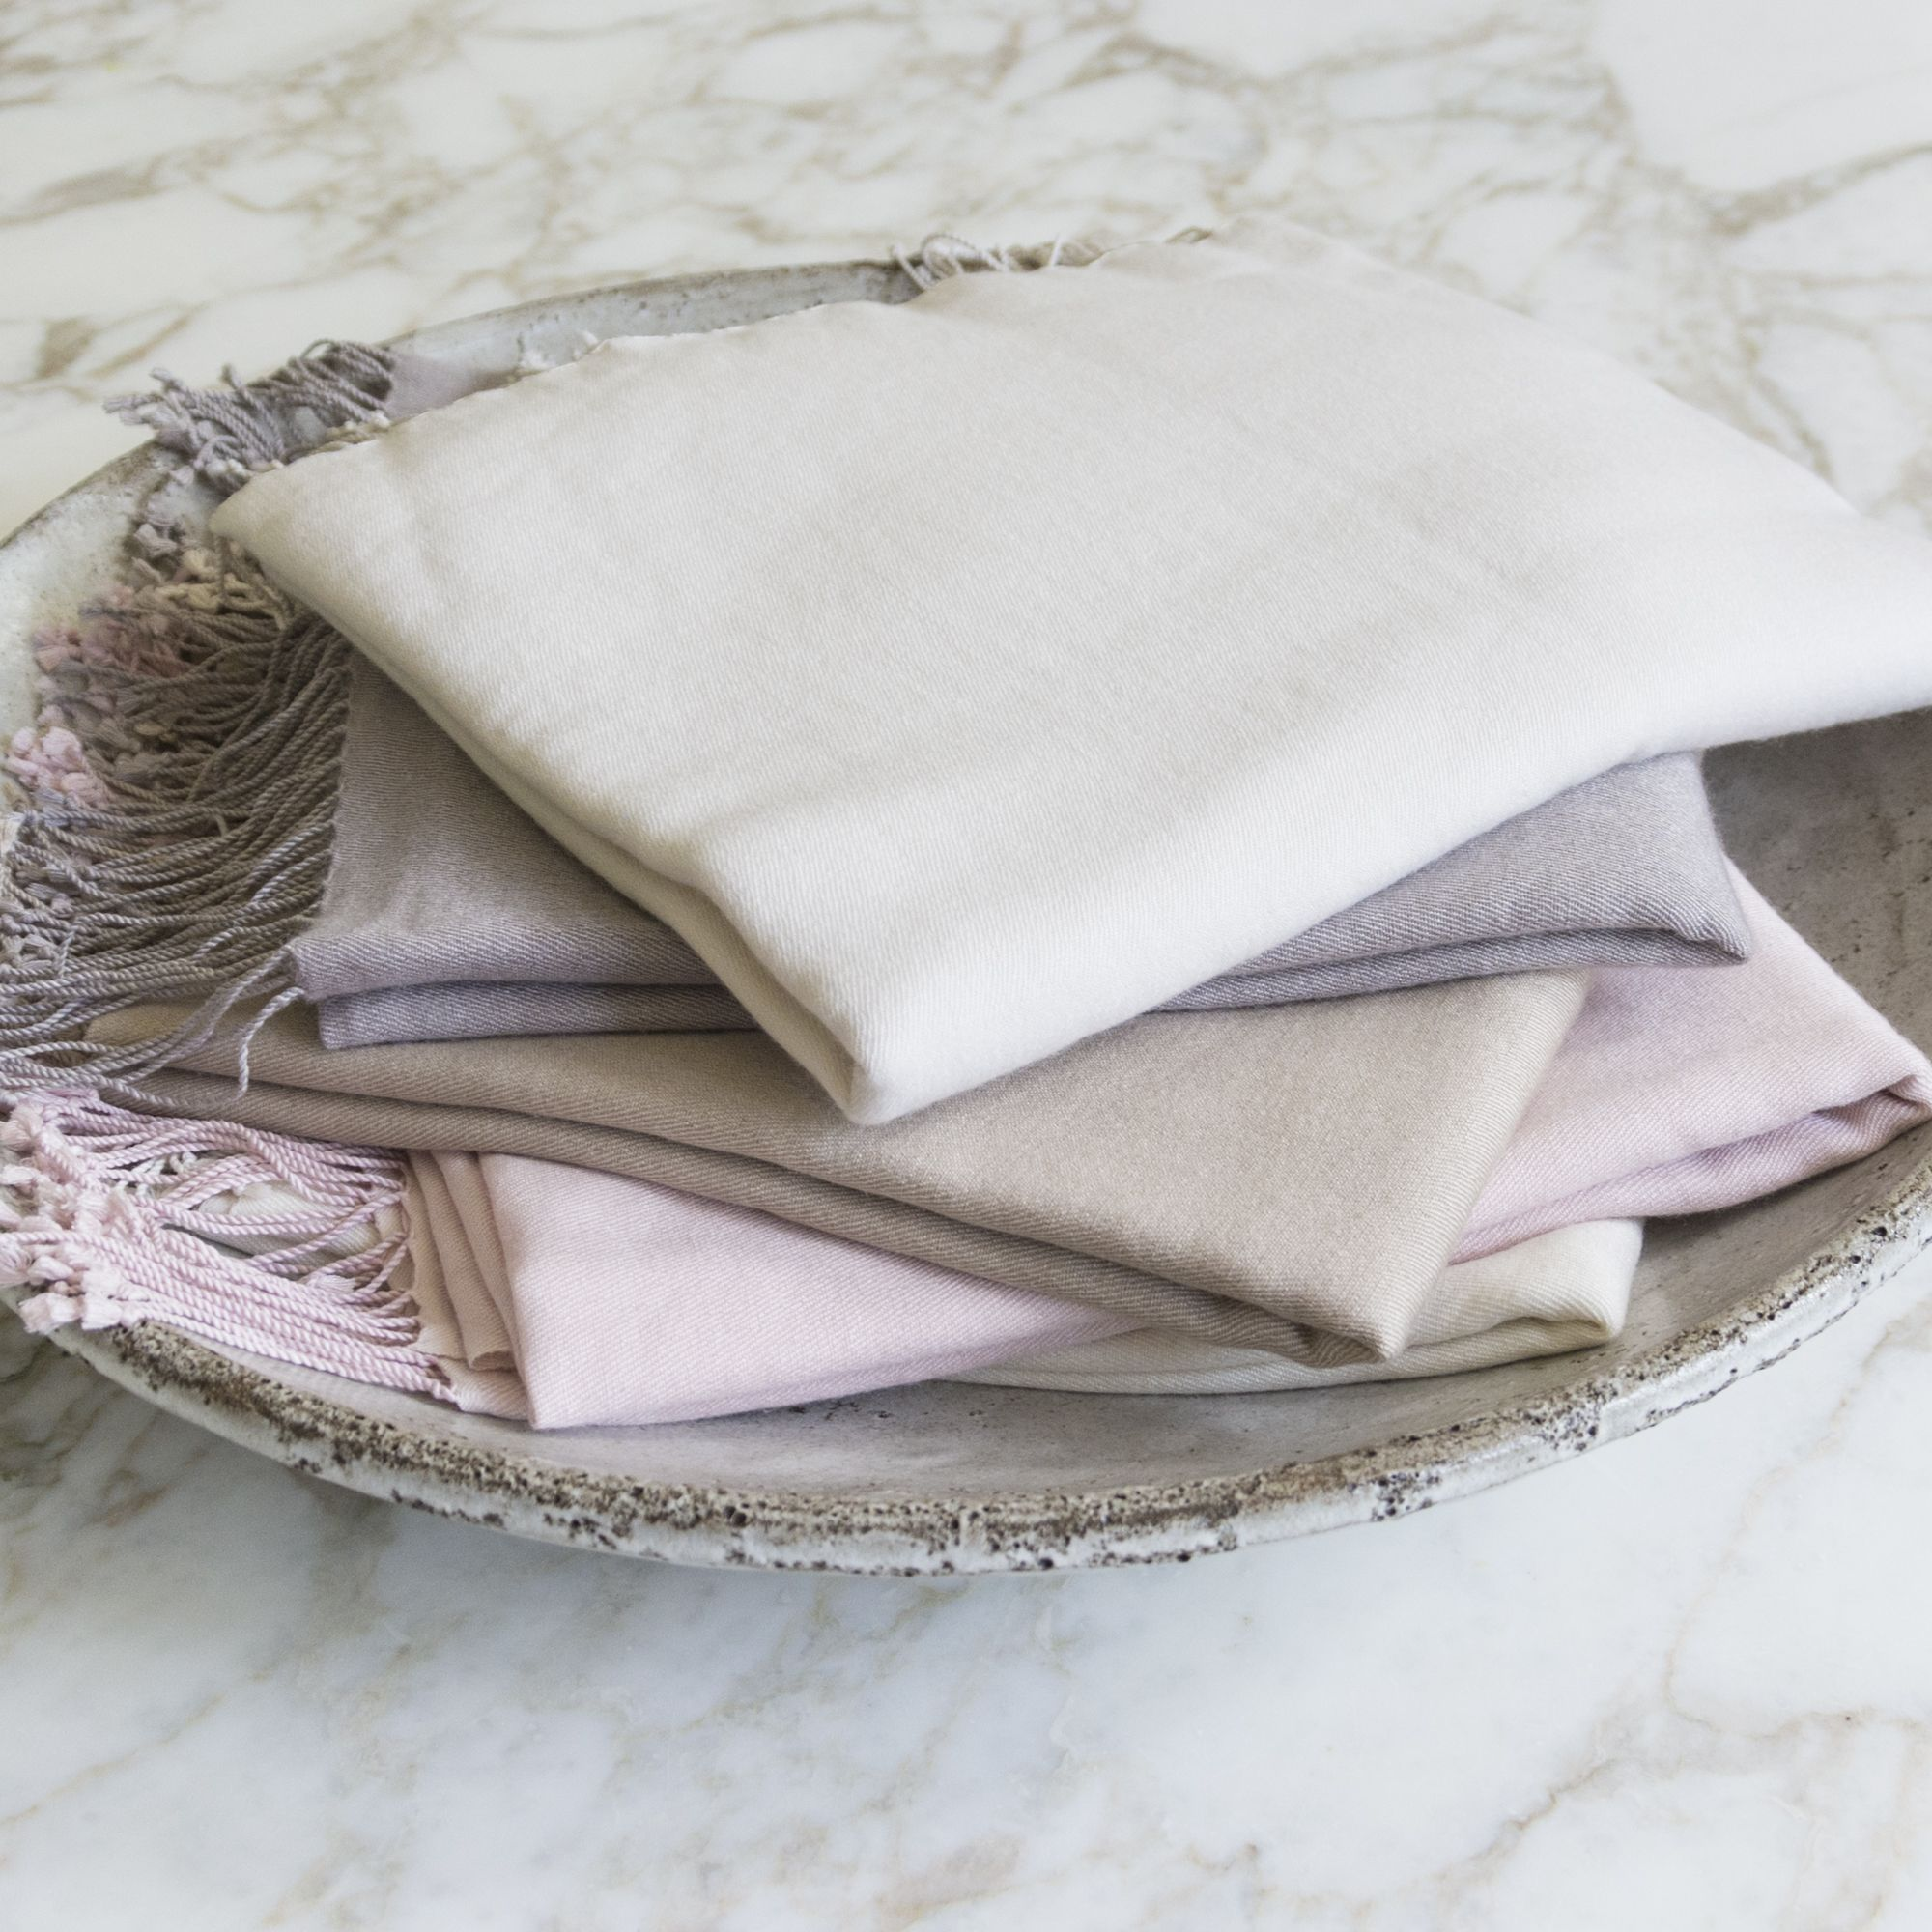 A quality pashmina is a true wardrobe staple, the perfect finishing touch for any number of outfits. This cashmere-silk blend shawl offers warmth, softness and the lustrous appeal of a luxury weave. For ultimate luxury and warmth, wrap yourself in pashmina.